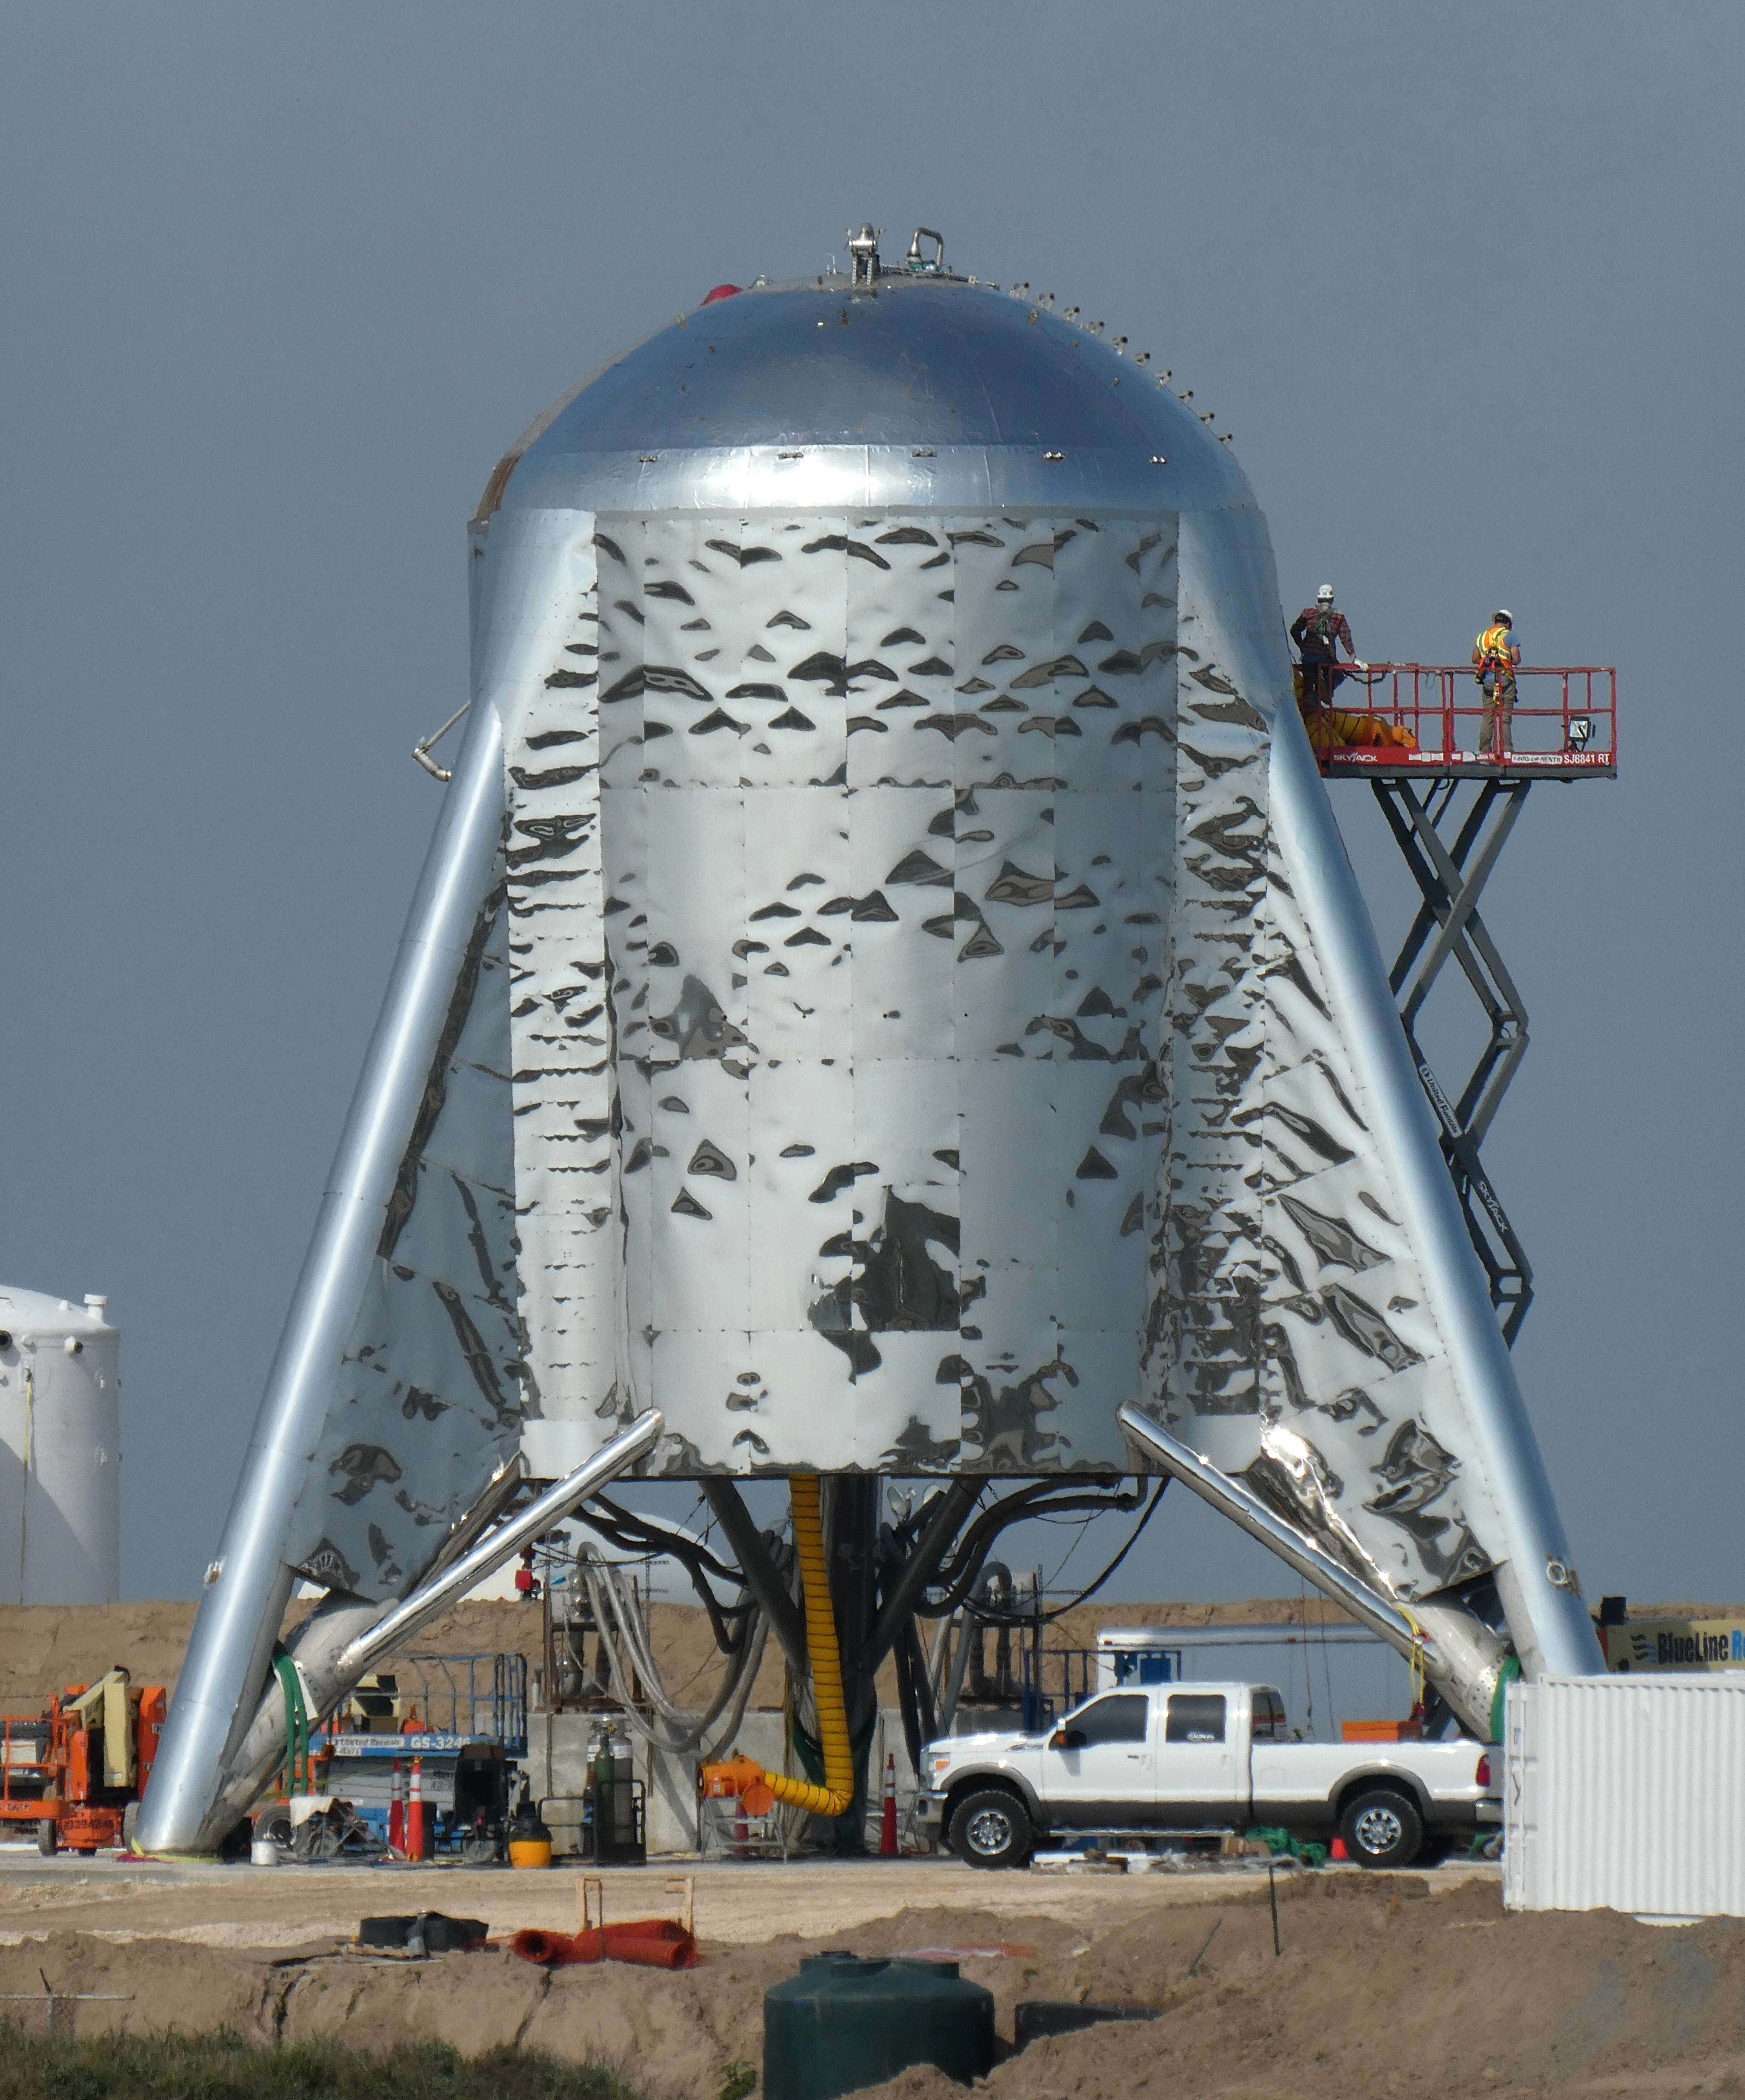 Prototype of SpaceX's Starhopper starship at the SpaceX launch site in Texas. (Image Credit: Nomadd, forum.nasaspaceflight.com)